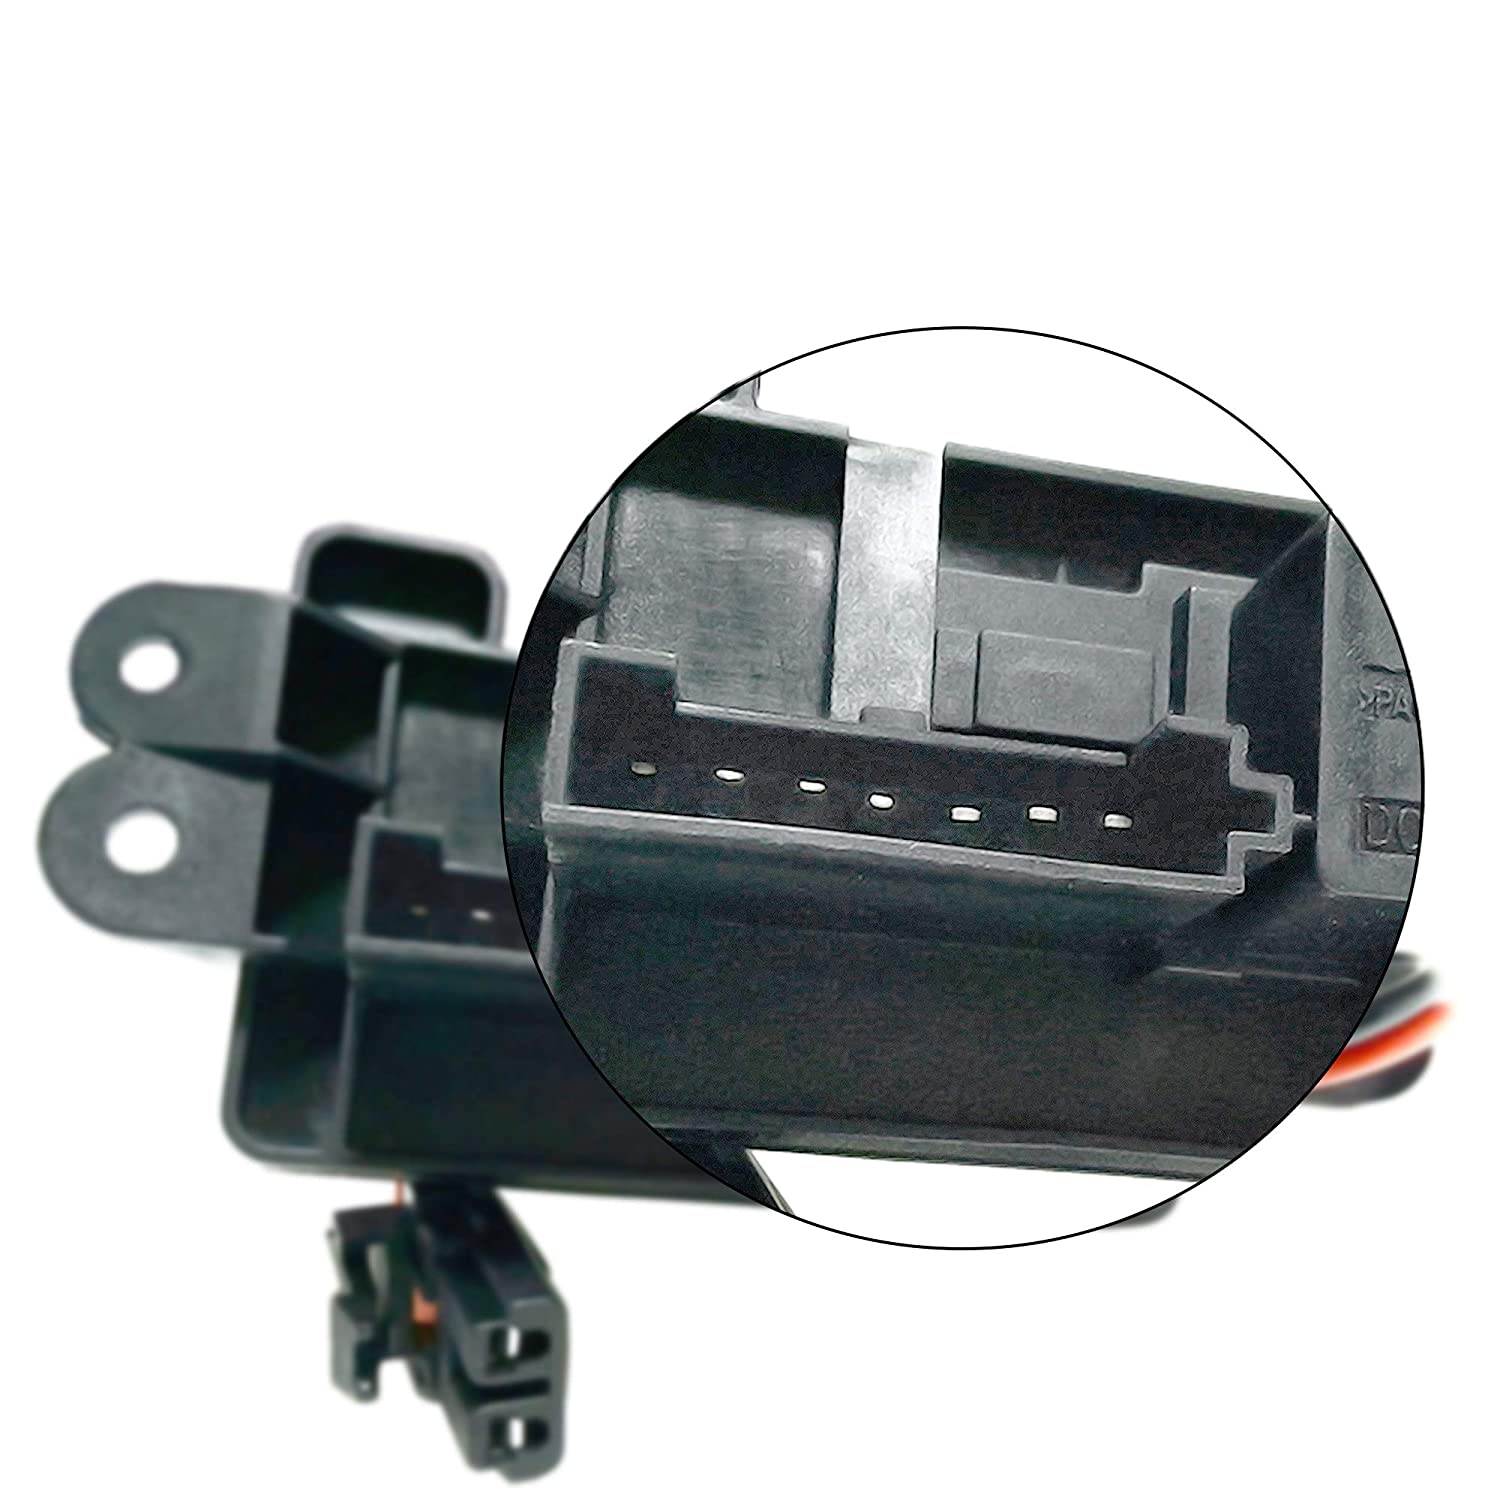 Cadillac Escalade With Manual A//C 5010081 Tahoe GMC Sierra Suburban DunGu Blower Motor Resistor and Wire Harness Kit Avalanche Yukon 22807123 Part#s 15 89019088 Chevy Silverado 15-81086 973-405